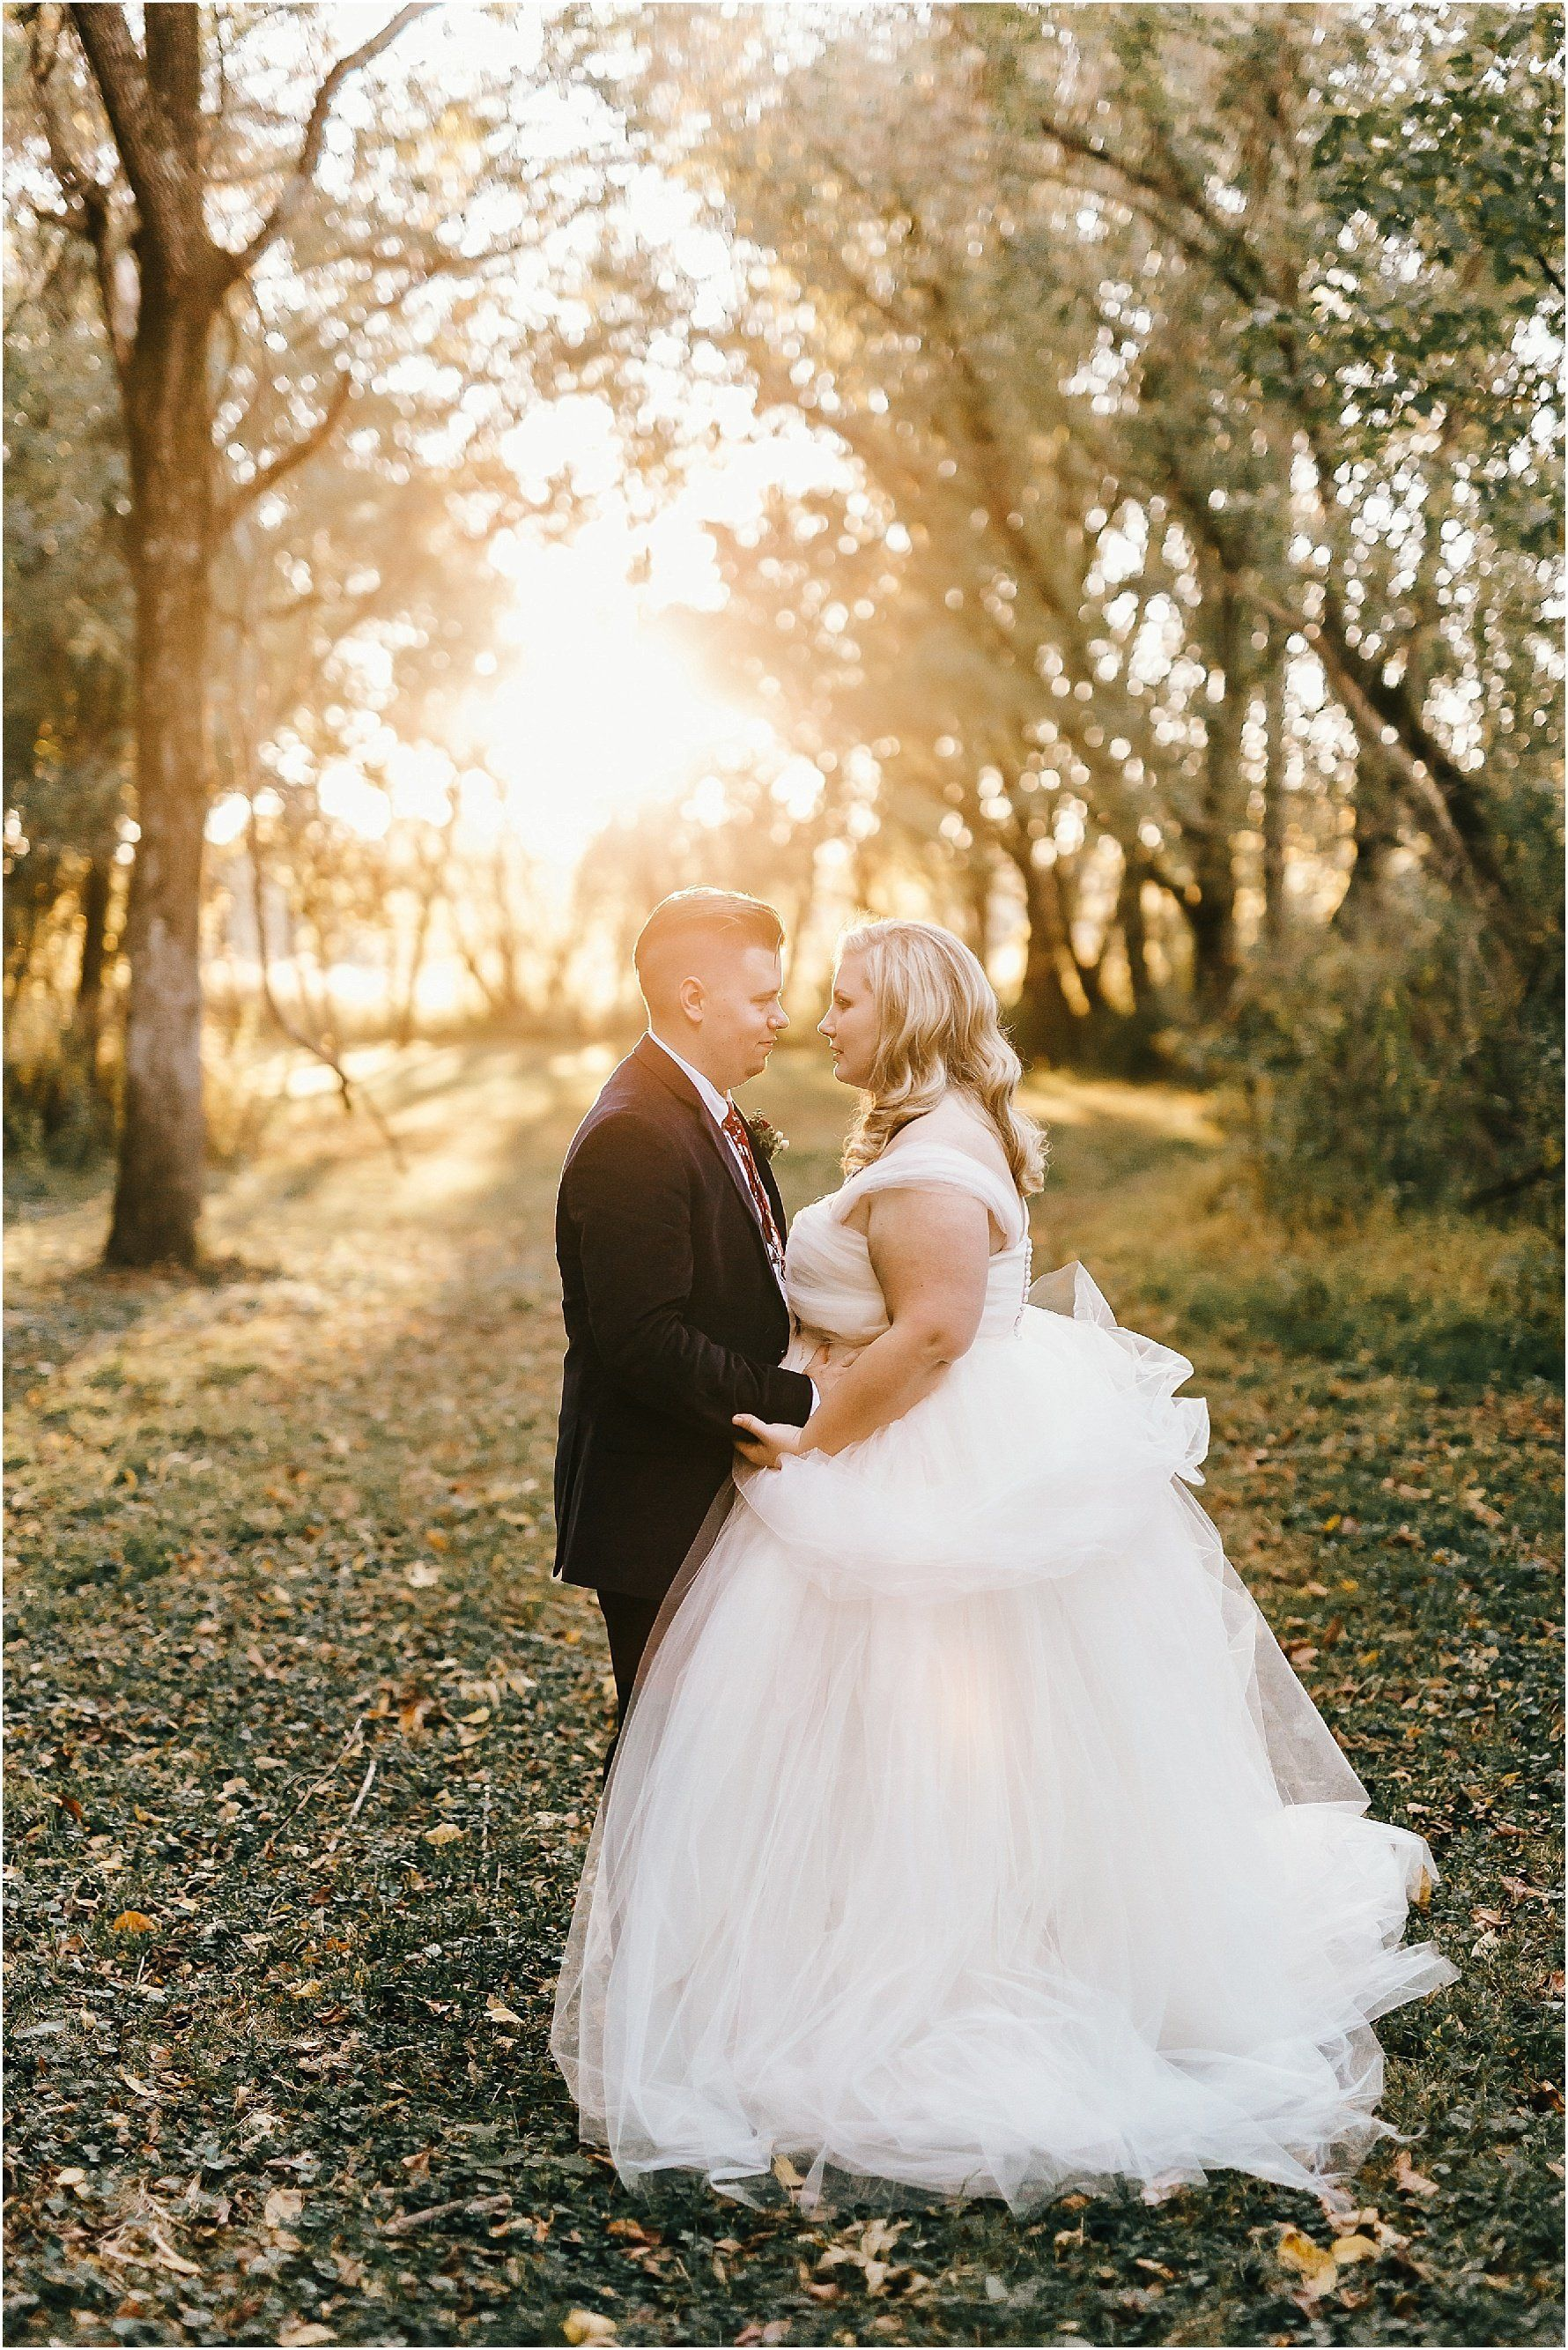 """Quinn and Jesse were married at a cozy farmhouse overlooking the Holston River in Knoxville, Tennessee! We had the best ligh"